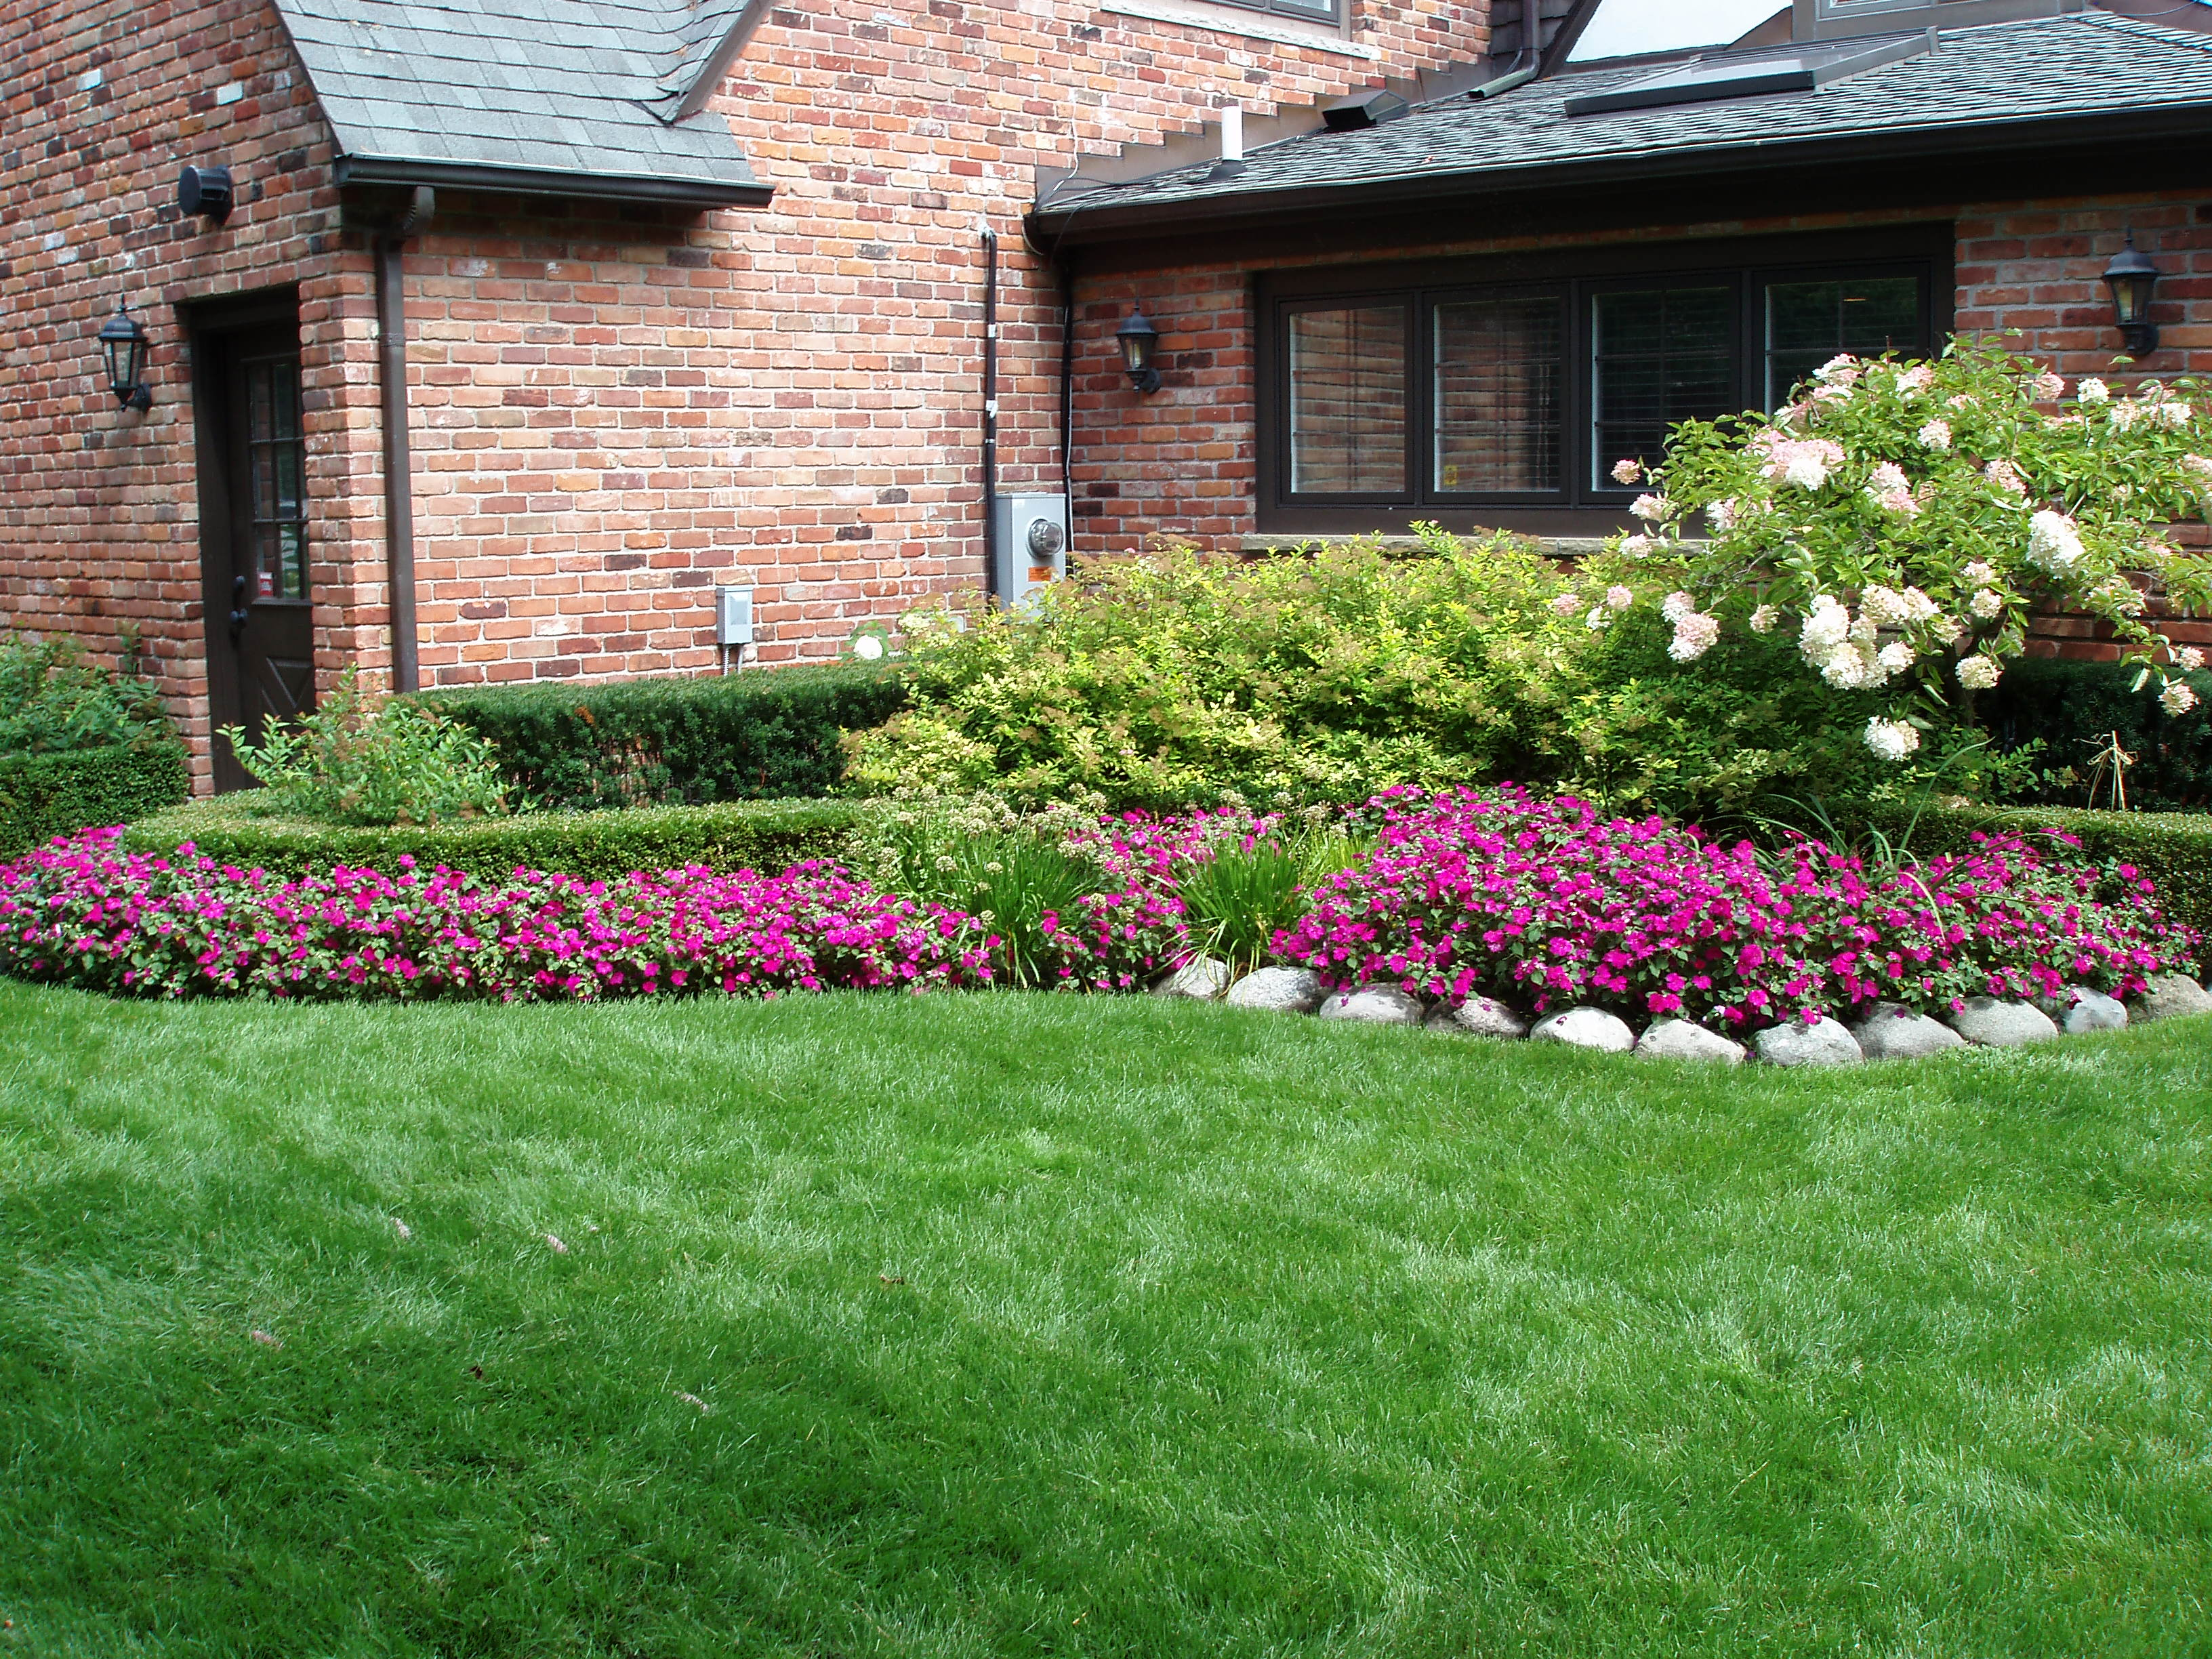 Landscaping total lawn care inc full lawn maintenance for Yard landscape design